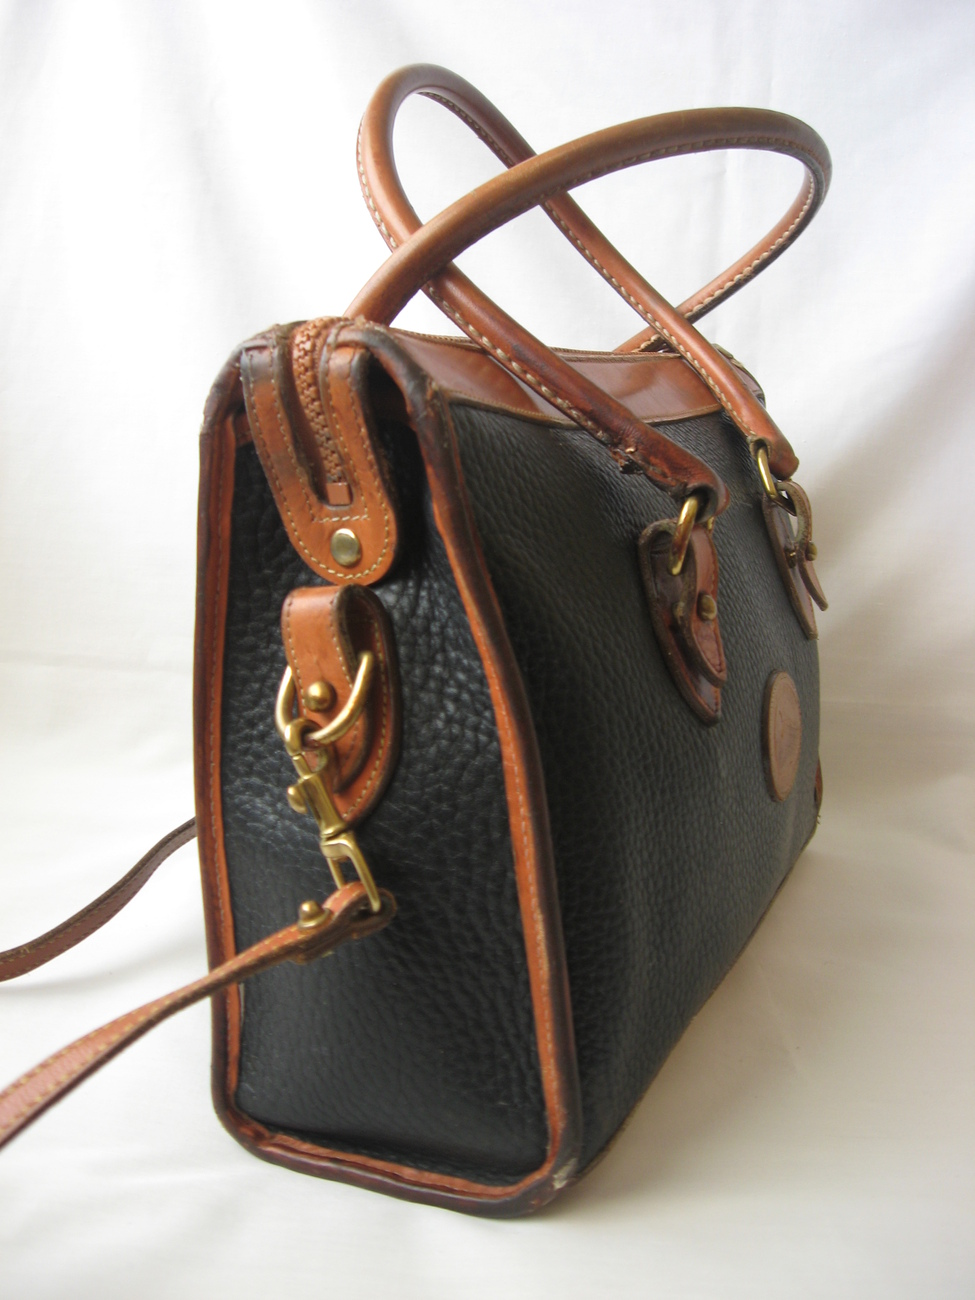 With QVC's classic collection of designer purses from Dooney & Bourke, impeccable crossbody, hobo, and satchel bags are only part of our sophisticated selection of leather handbags. Size up our mini bags as well, making their mark with a uniquely smaller shape.